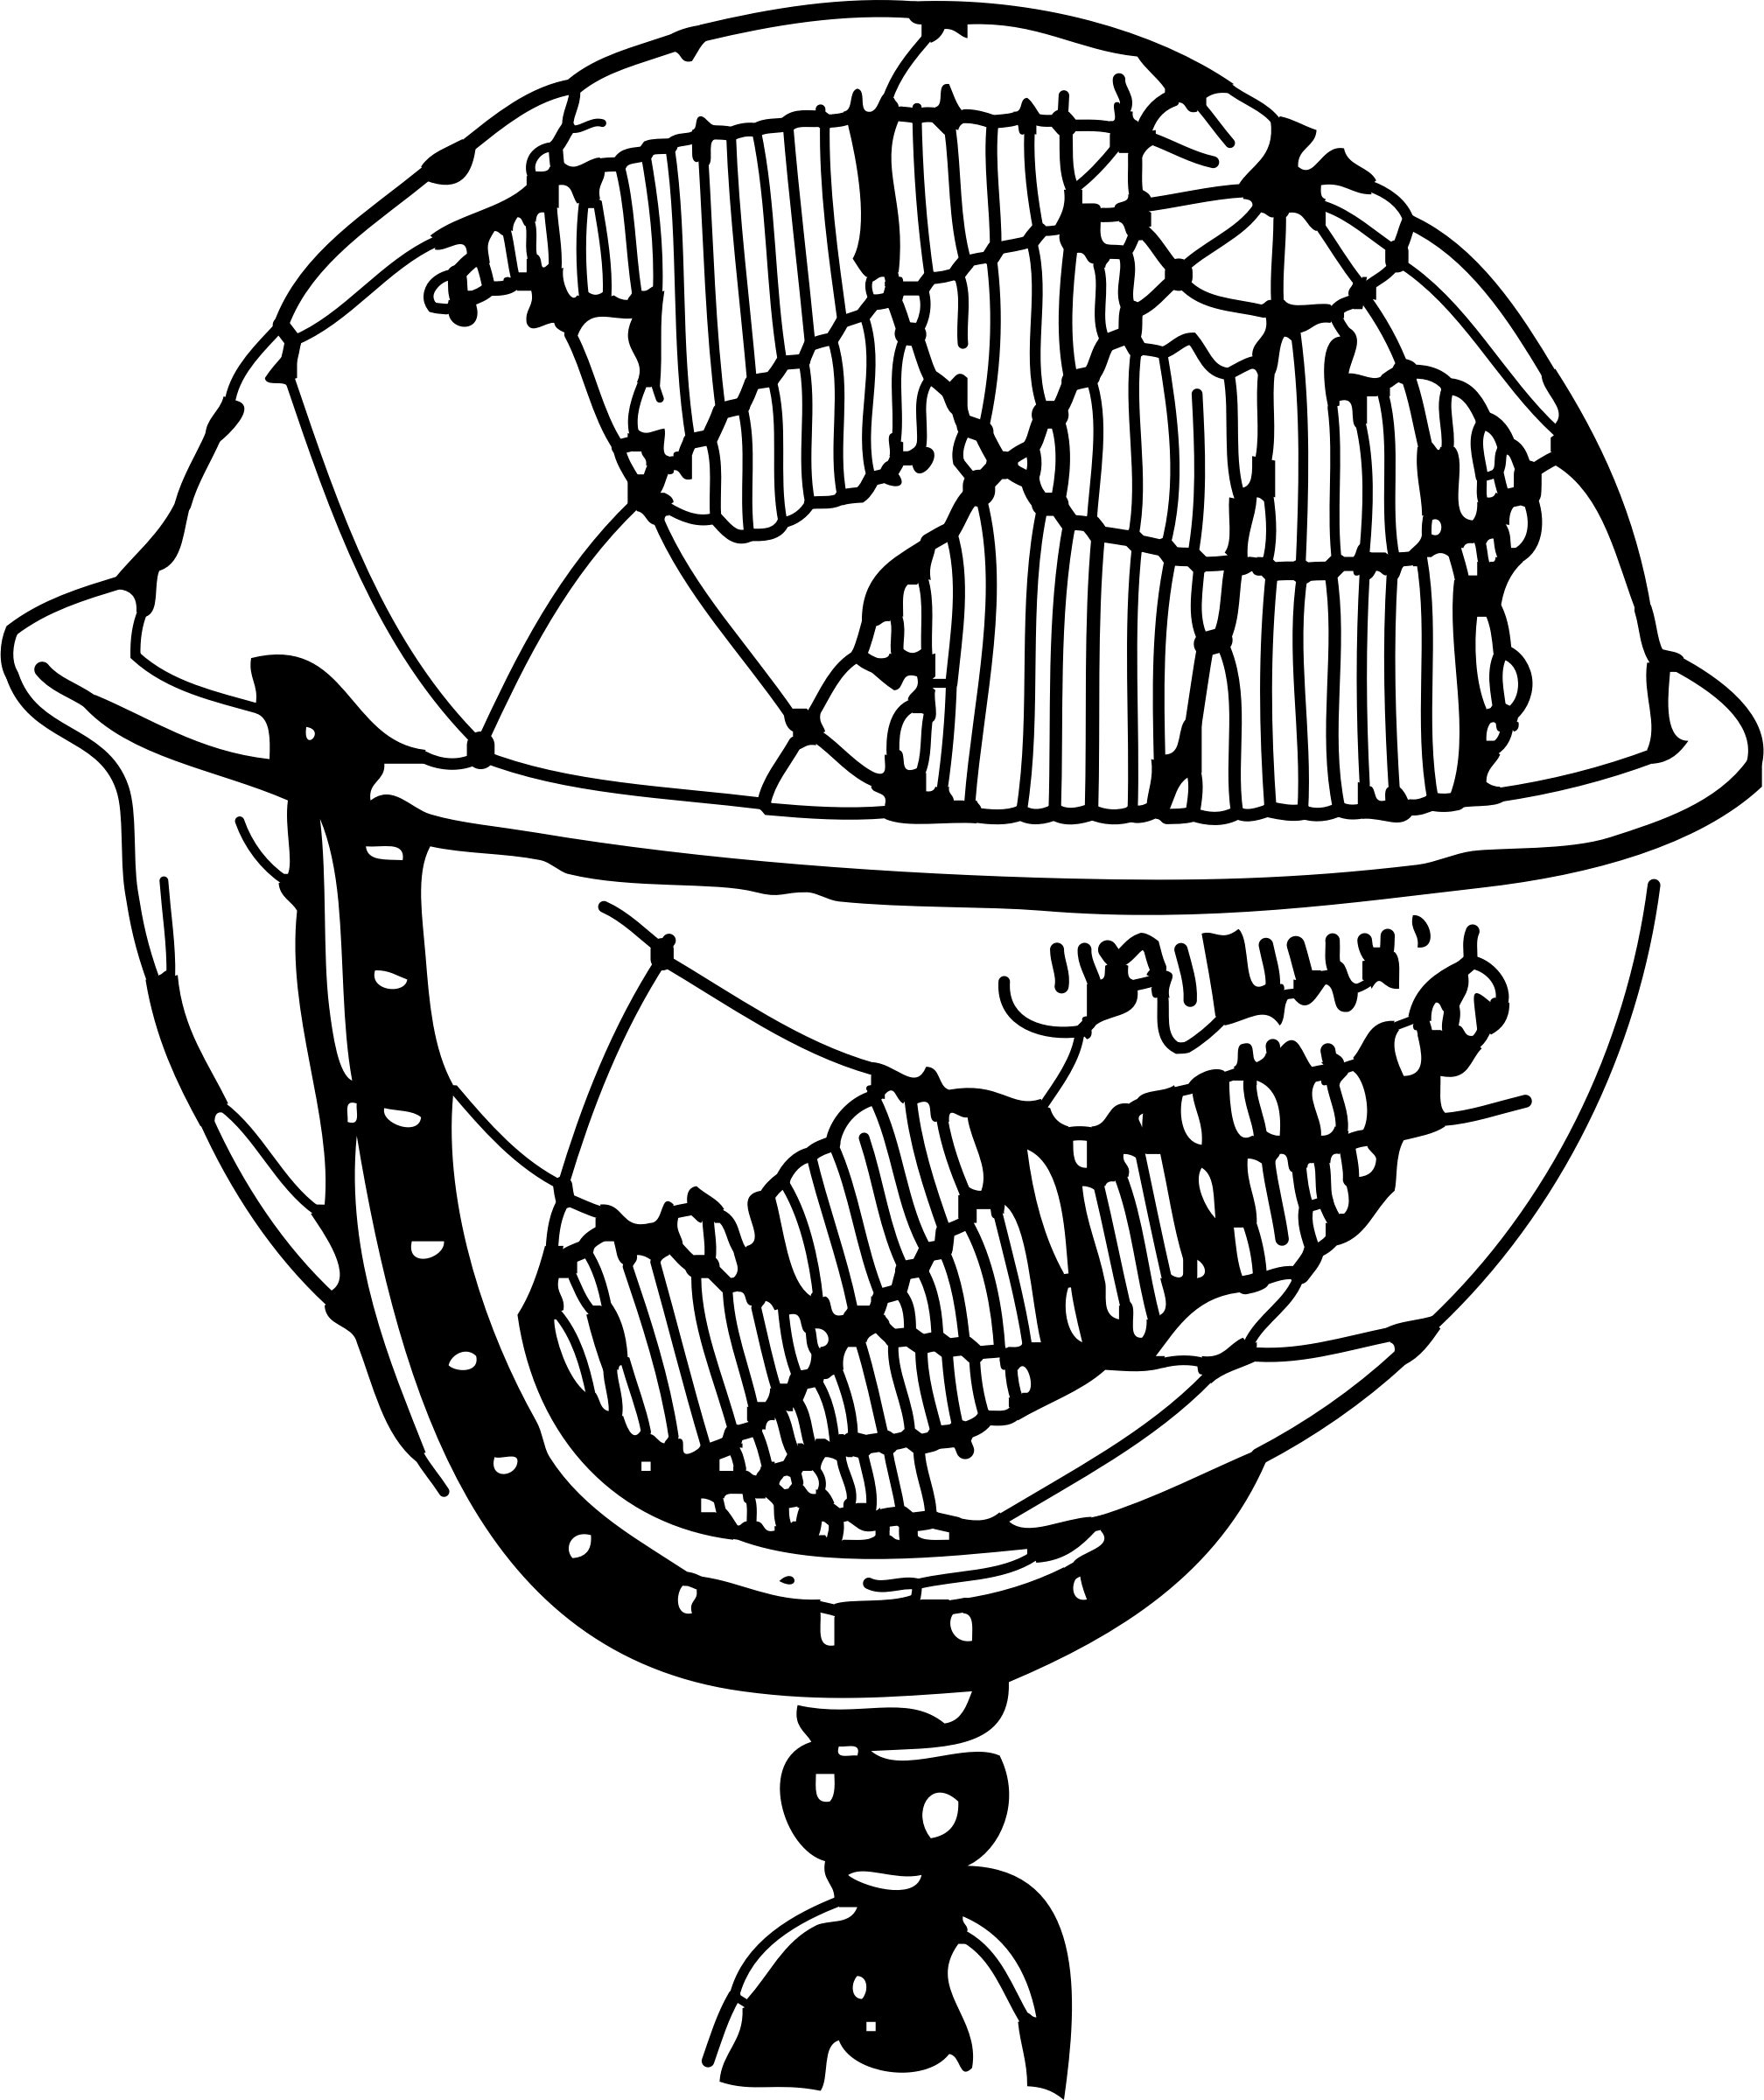 Black And White Clipart Globe 20 Free Cliparts